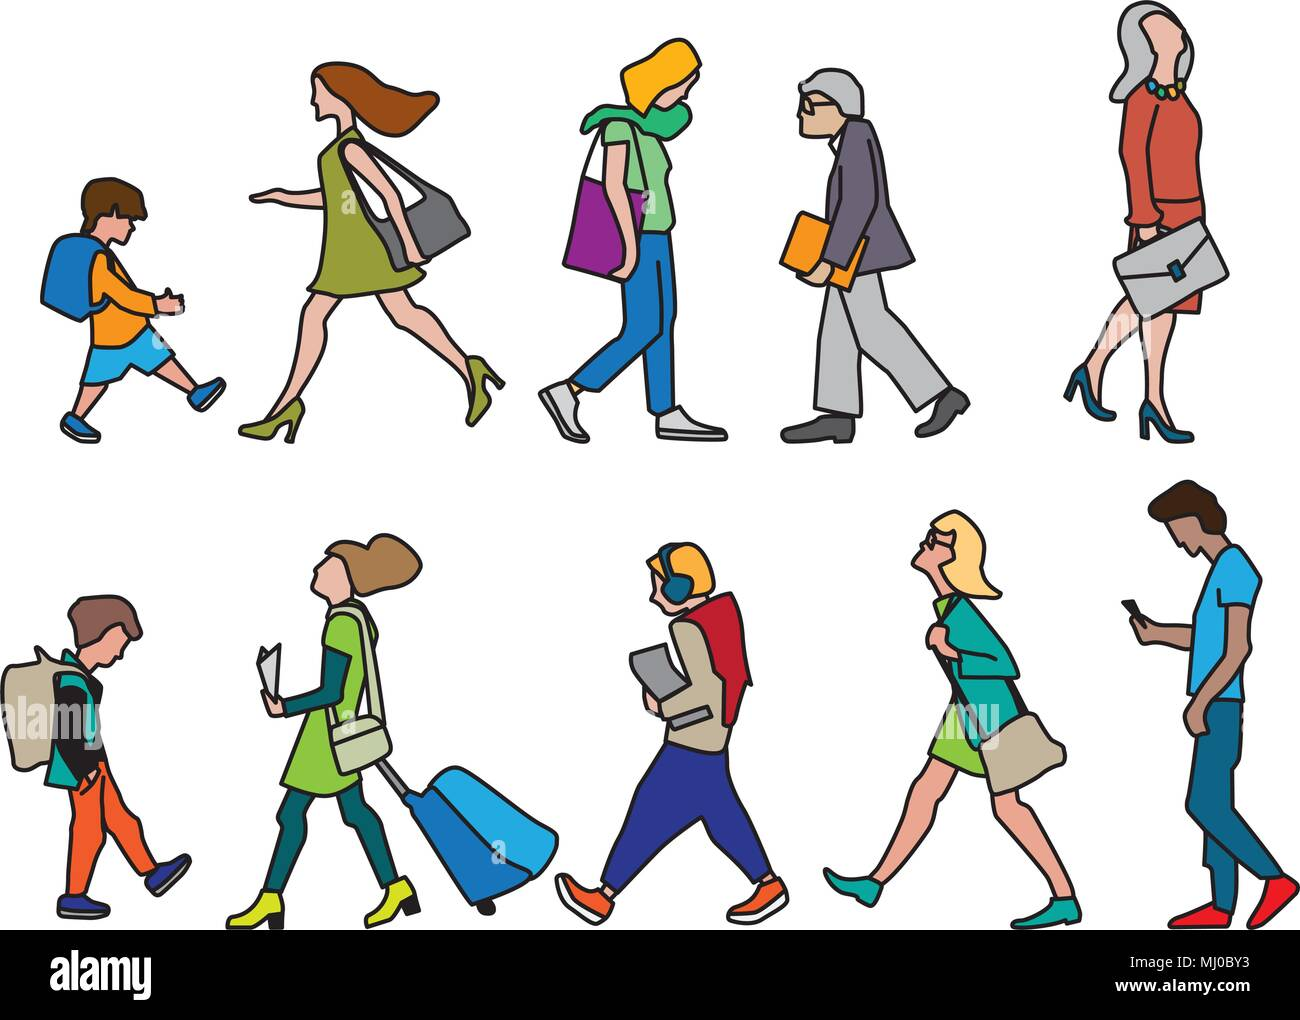 Vector illustration of People on the street. Characters set in flat design. - Stock Vector